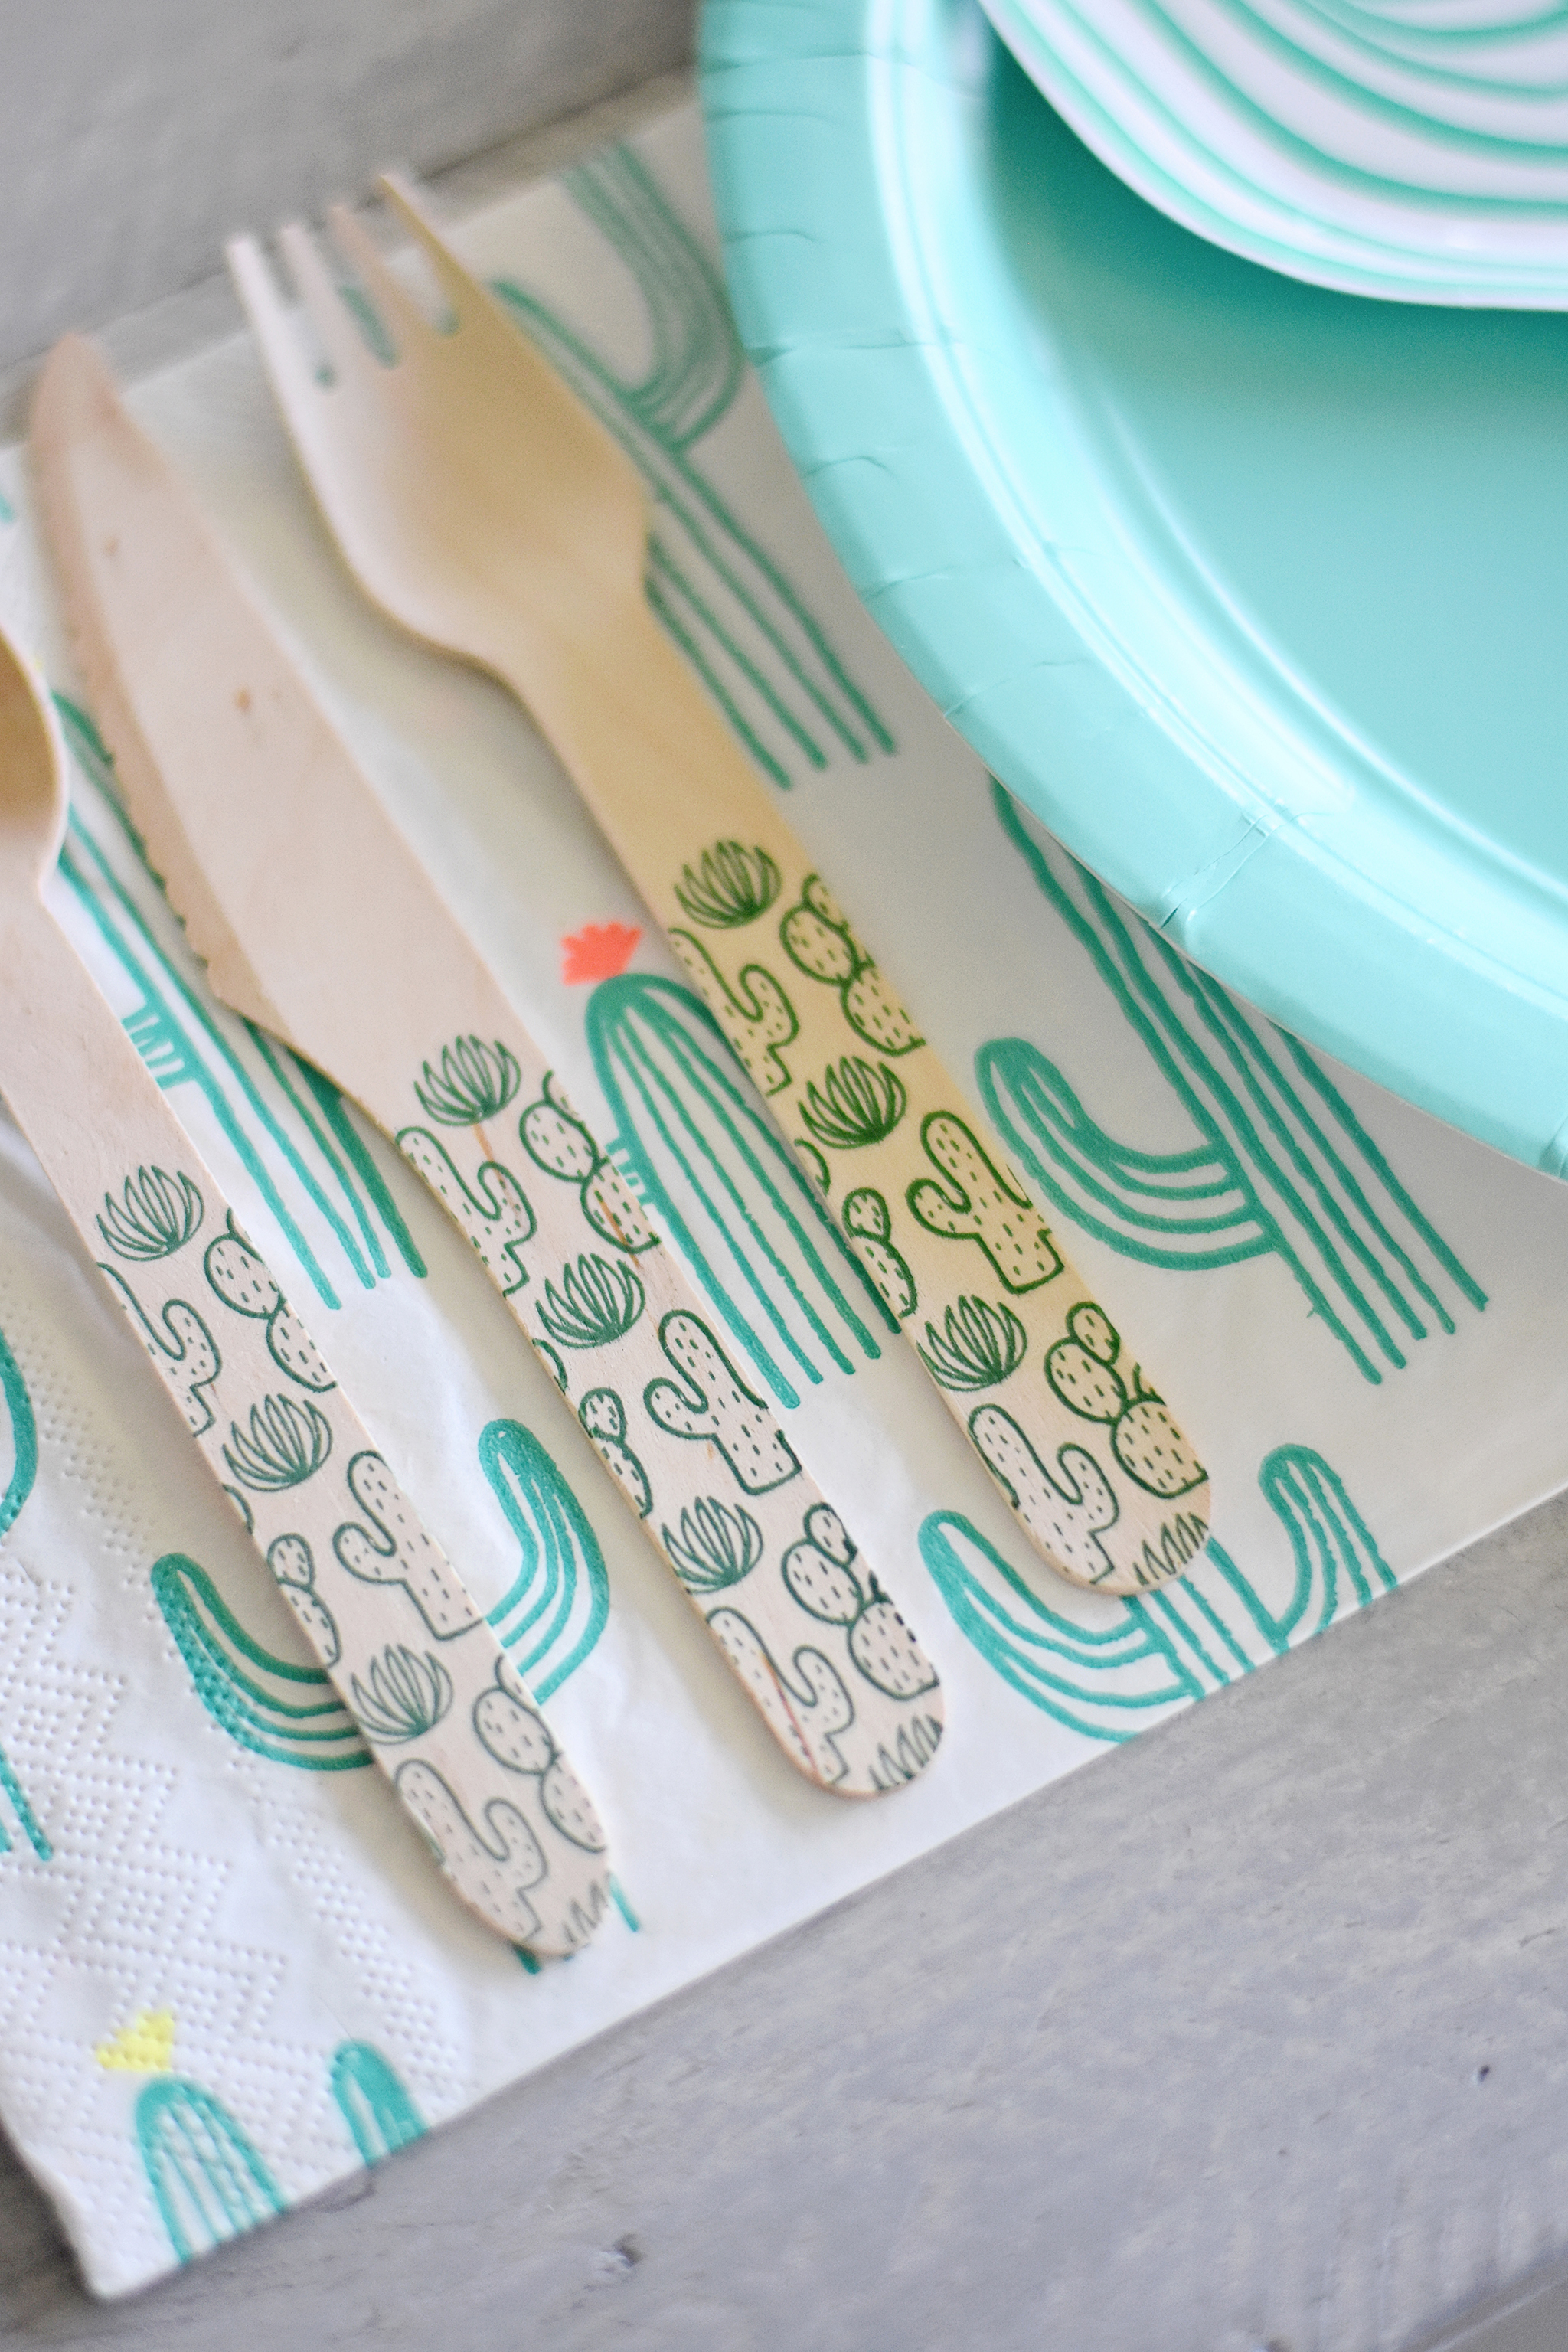 Cacti Print Flatware from Sucre Shop!